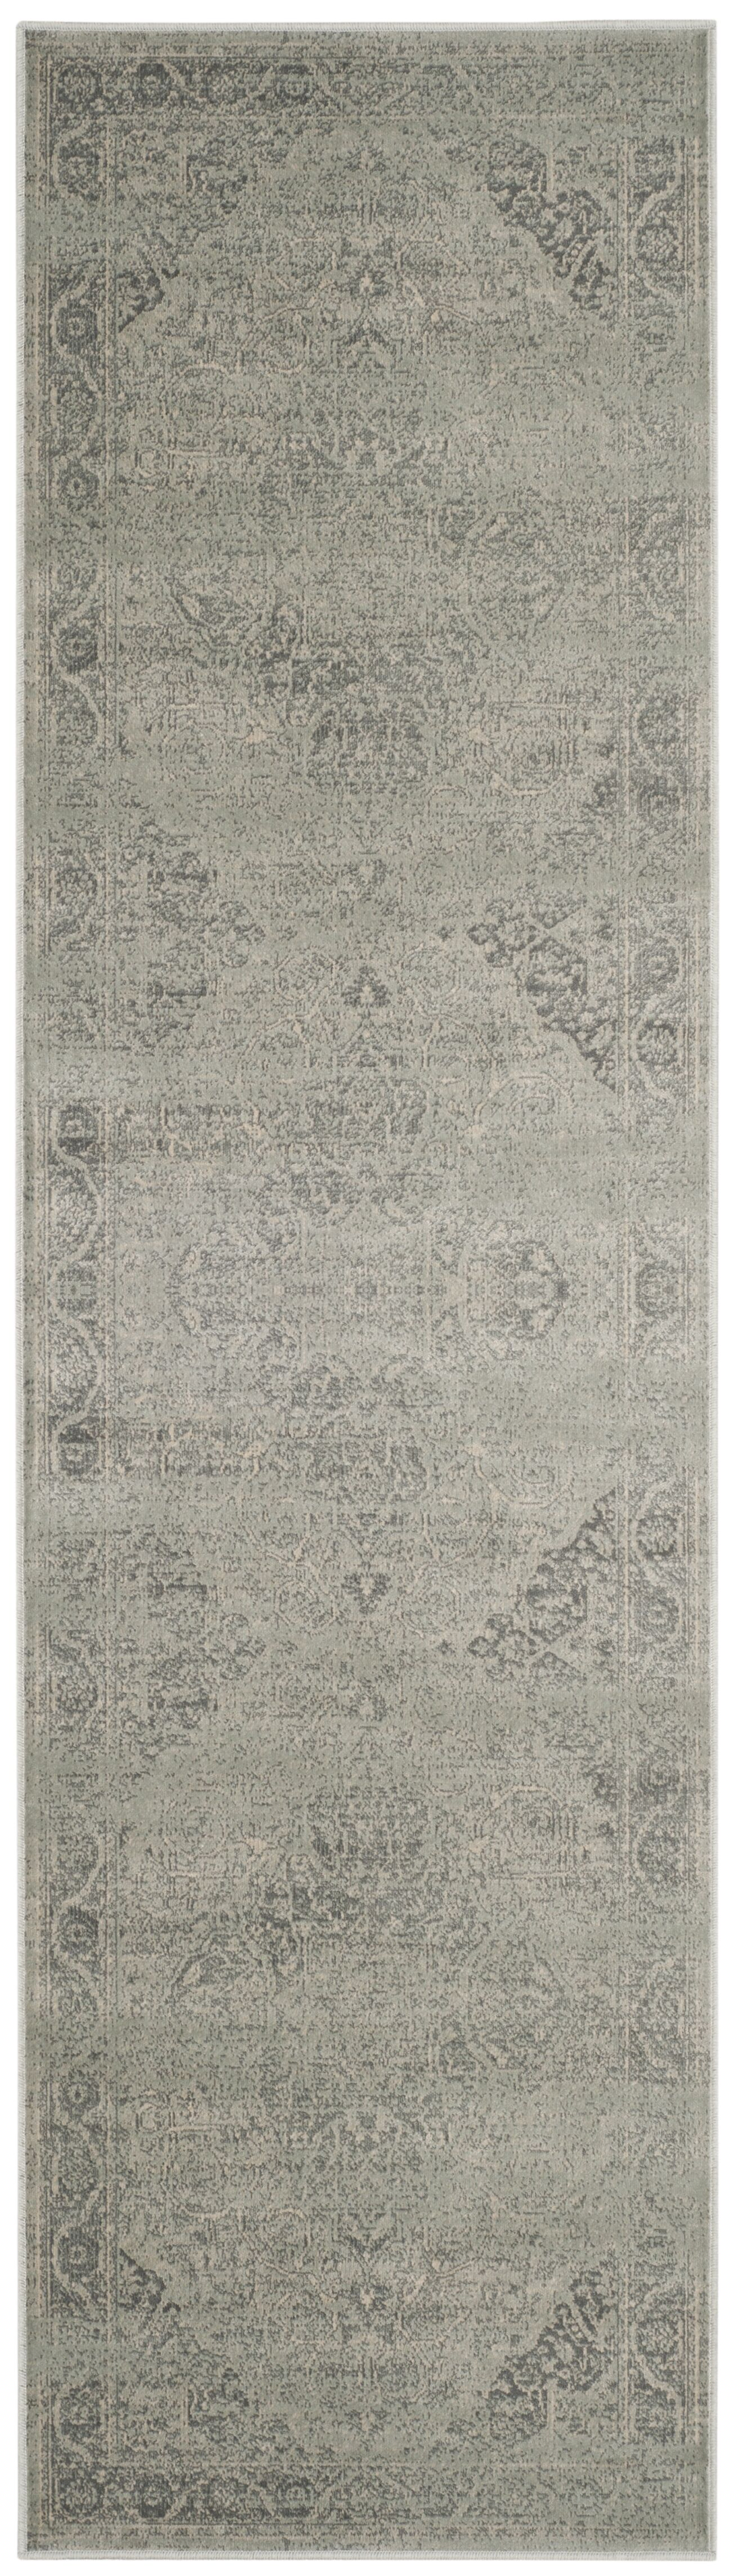 Frith Silver Area Rug Rug Size: Runner 2'2